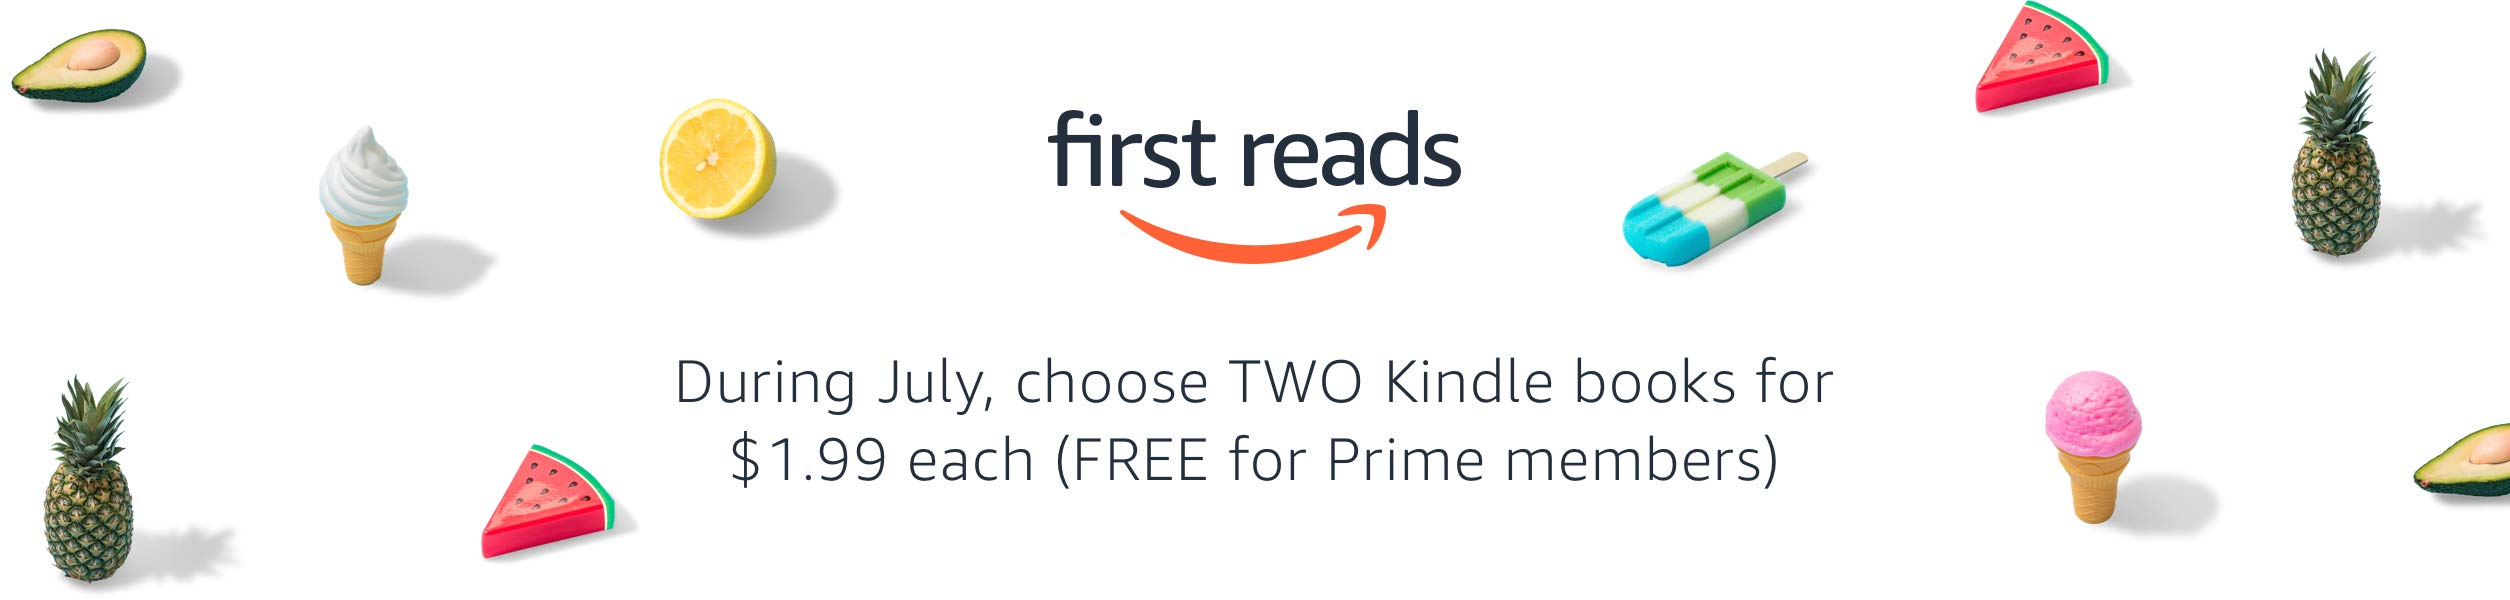 Choose TWO Kindle Books for FREE